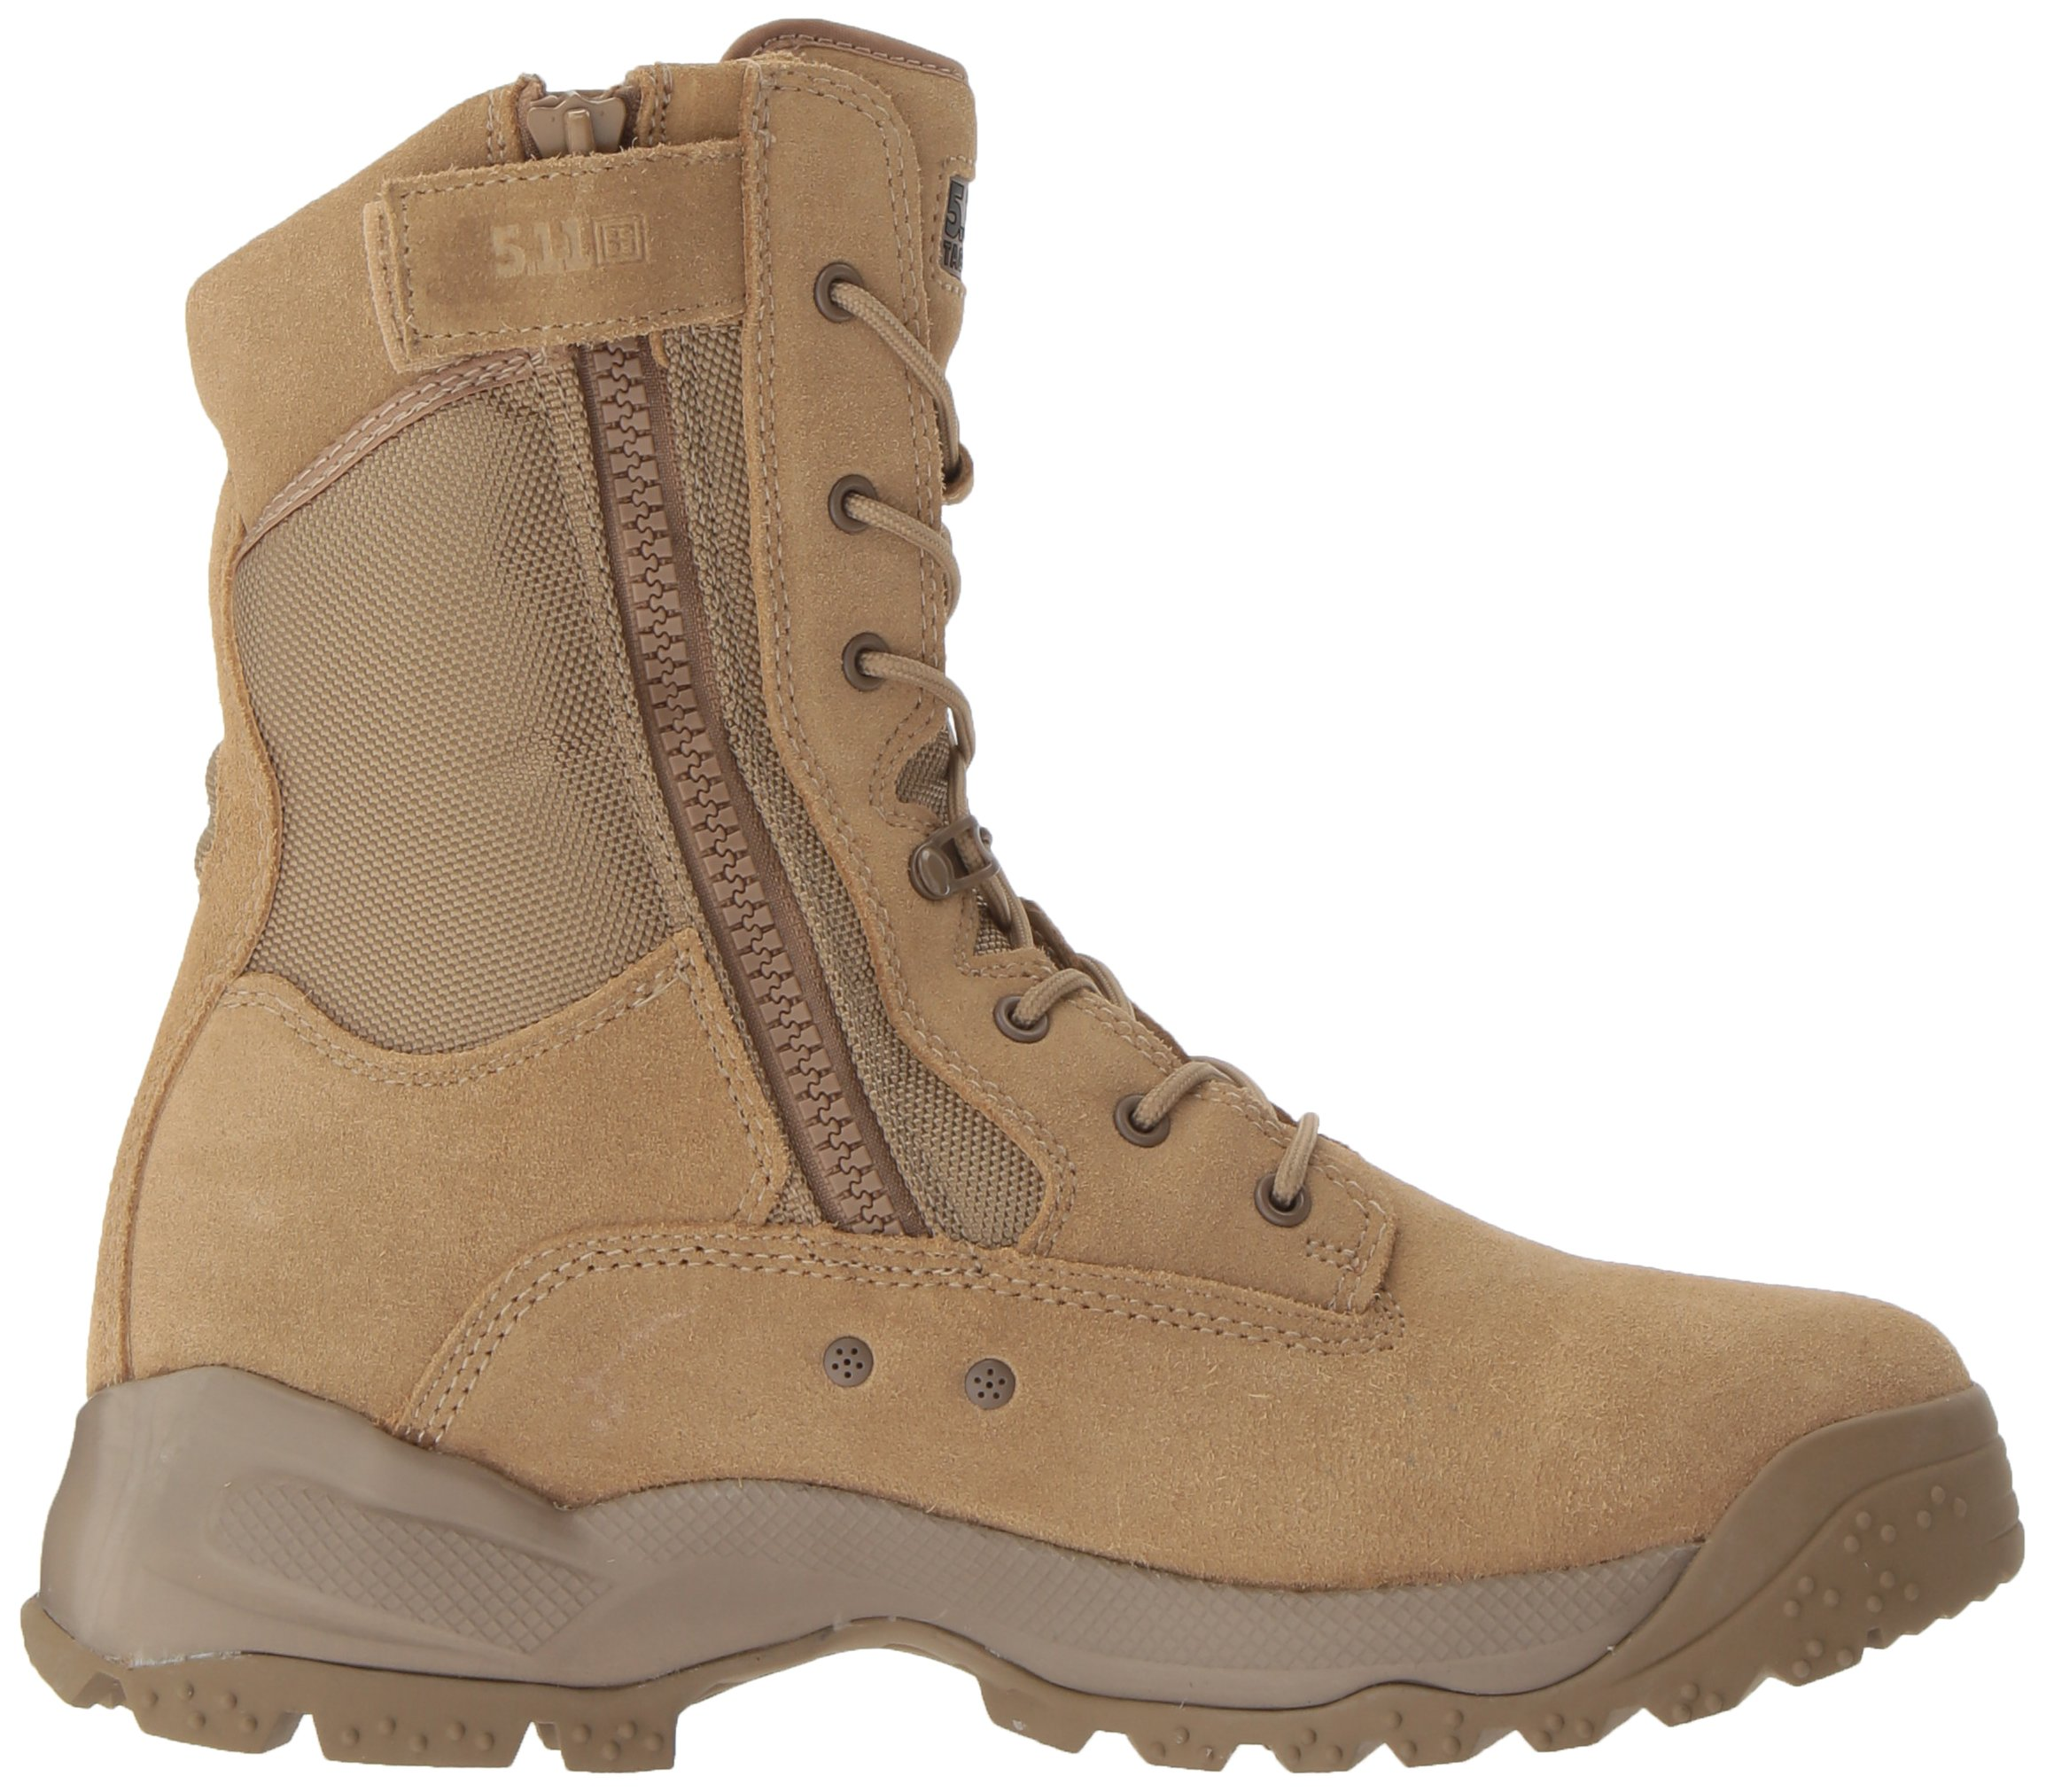 5.11 Atac 8In Boot-U, Coyote Brown, 11 D(M) US by 5.11 (Image #7)